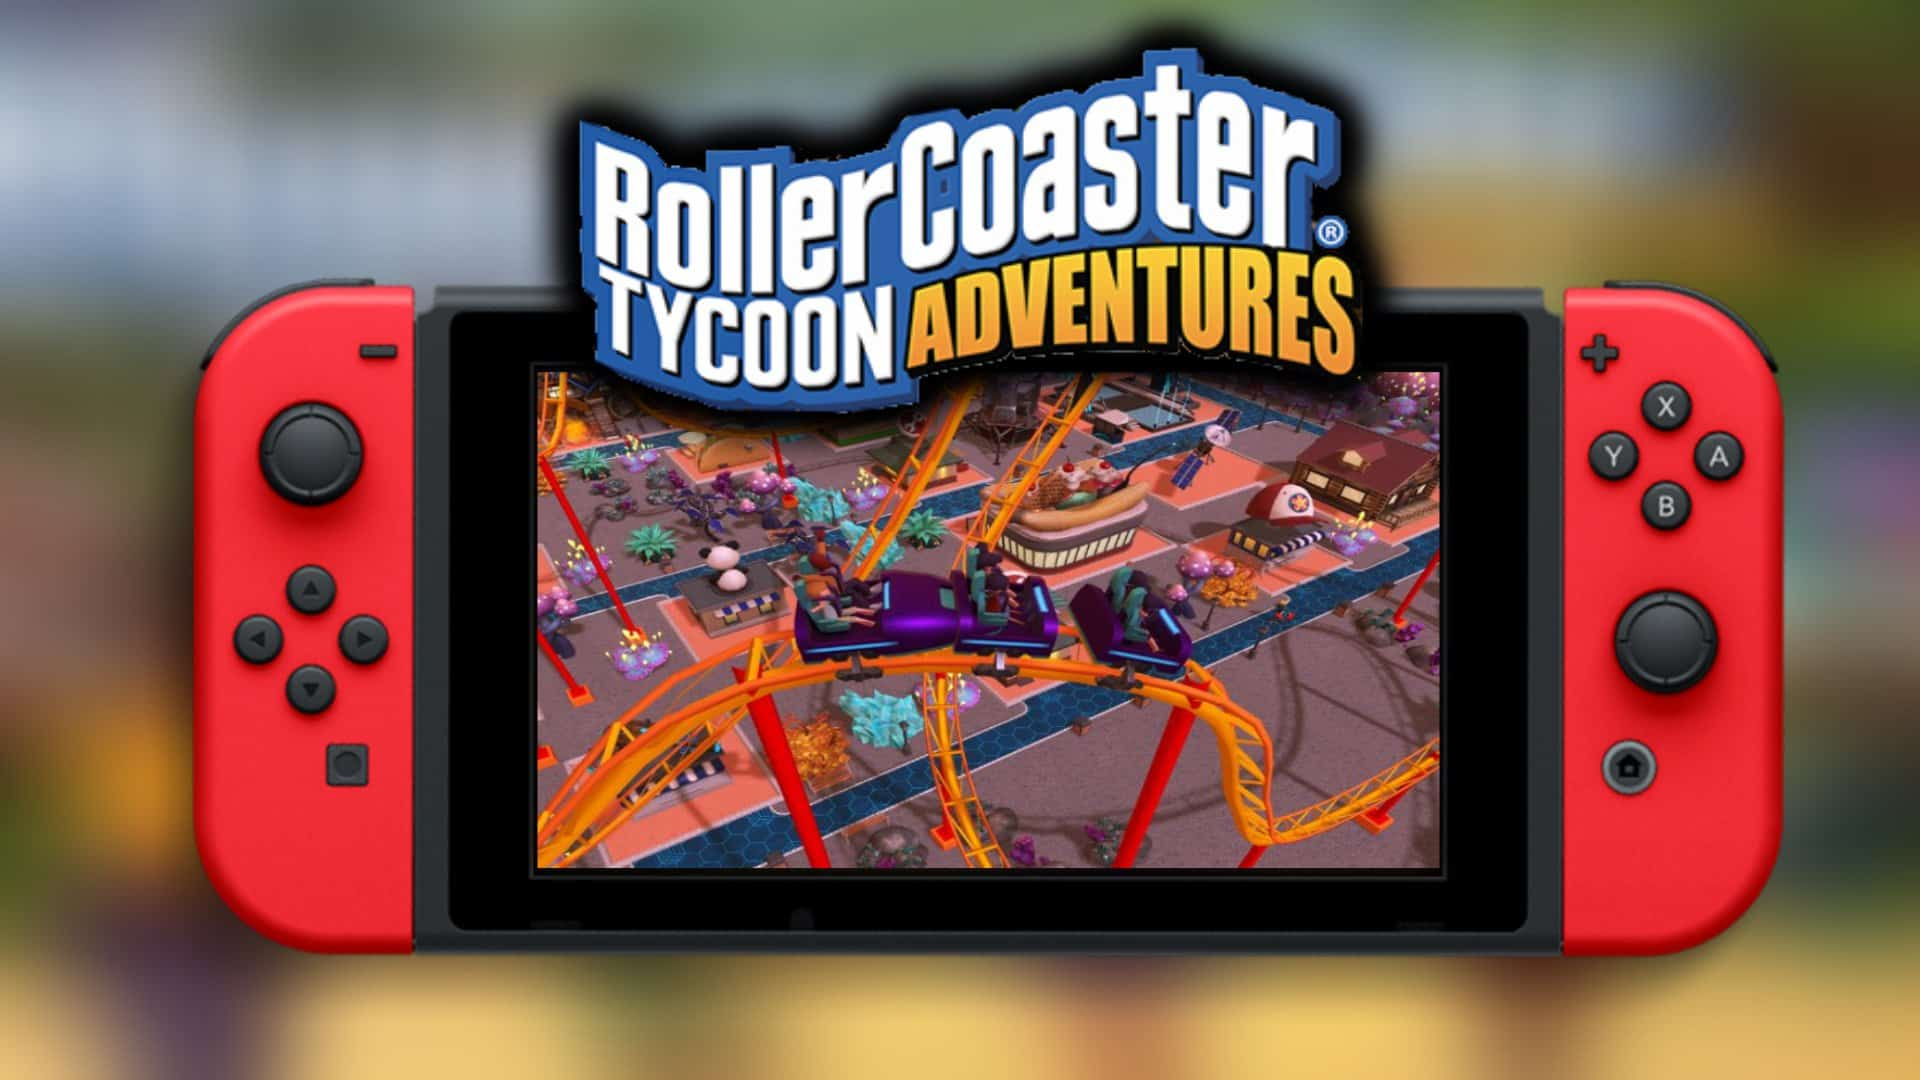 Rollercoaster Tycoon Adventures brings the series to